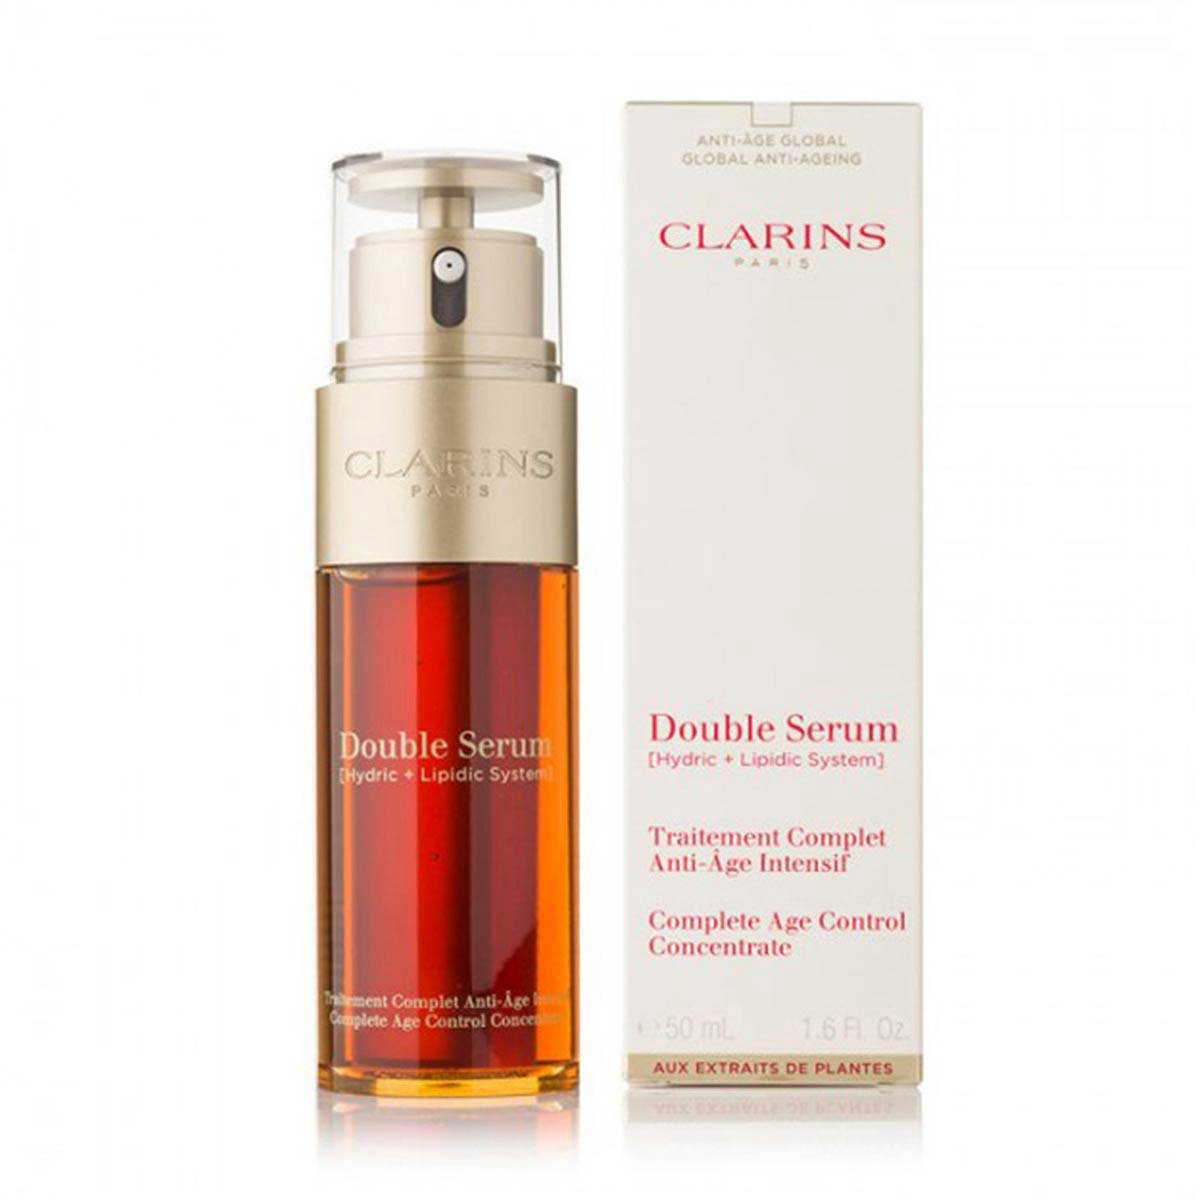 Double Serum 50ml [Parallel Import]